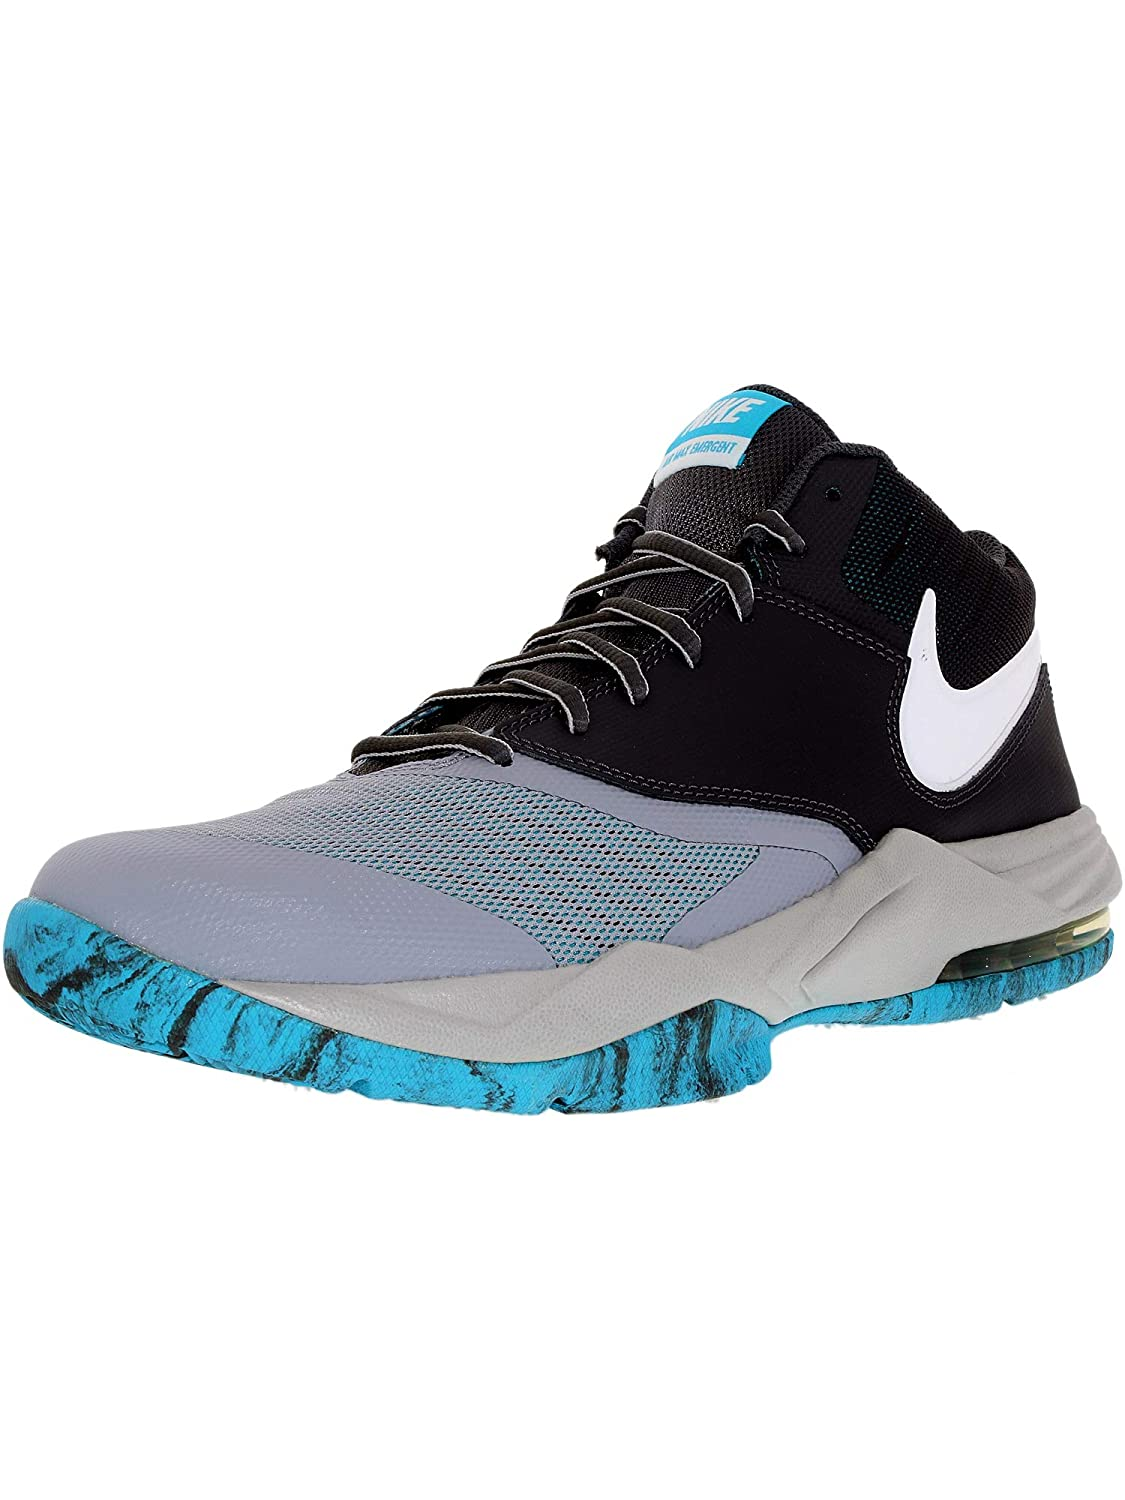 Nike Men's Air Max Emergent Ankle-High